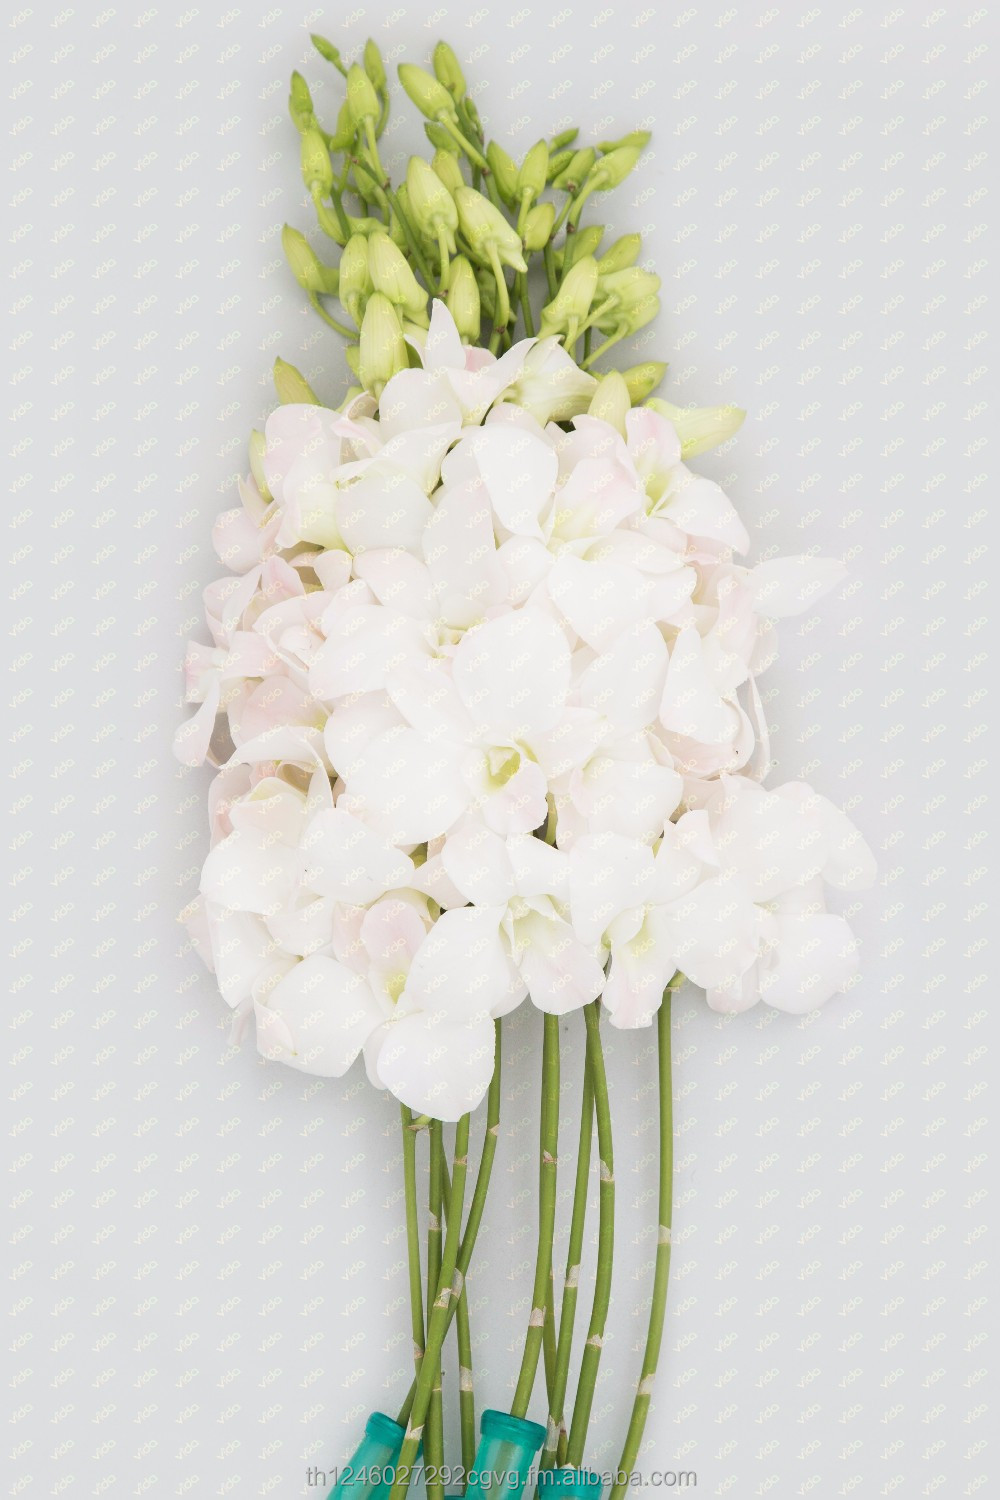 Fresh Cut Orchid / White Dendrobium